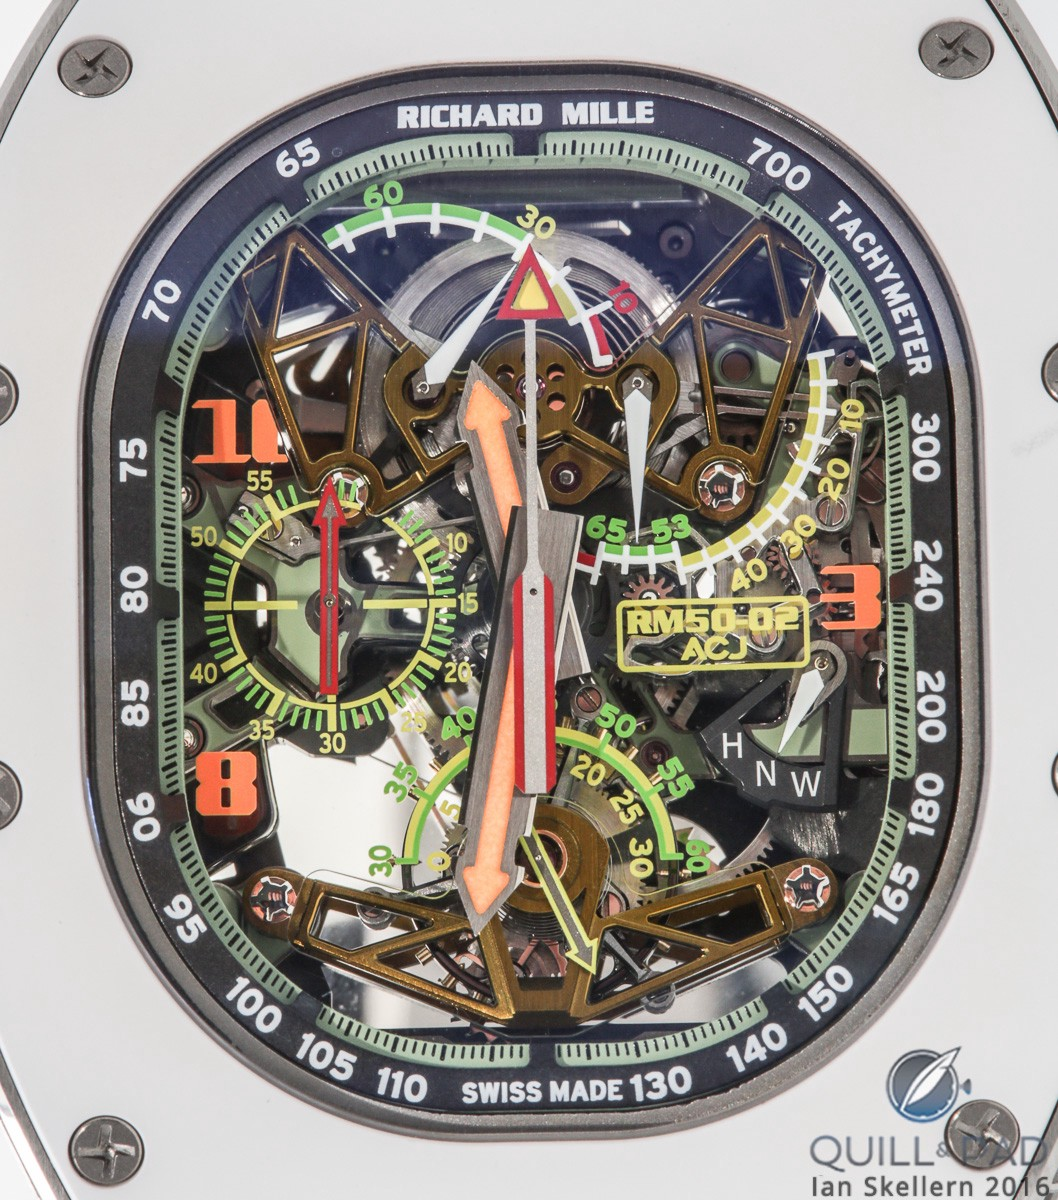 A close look through the Airbus window-shaped sapphire crystal of the Richard Mille RM 50-02 Airbus ACJ Tourbilon Split-Seconds